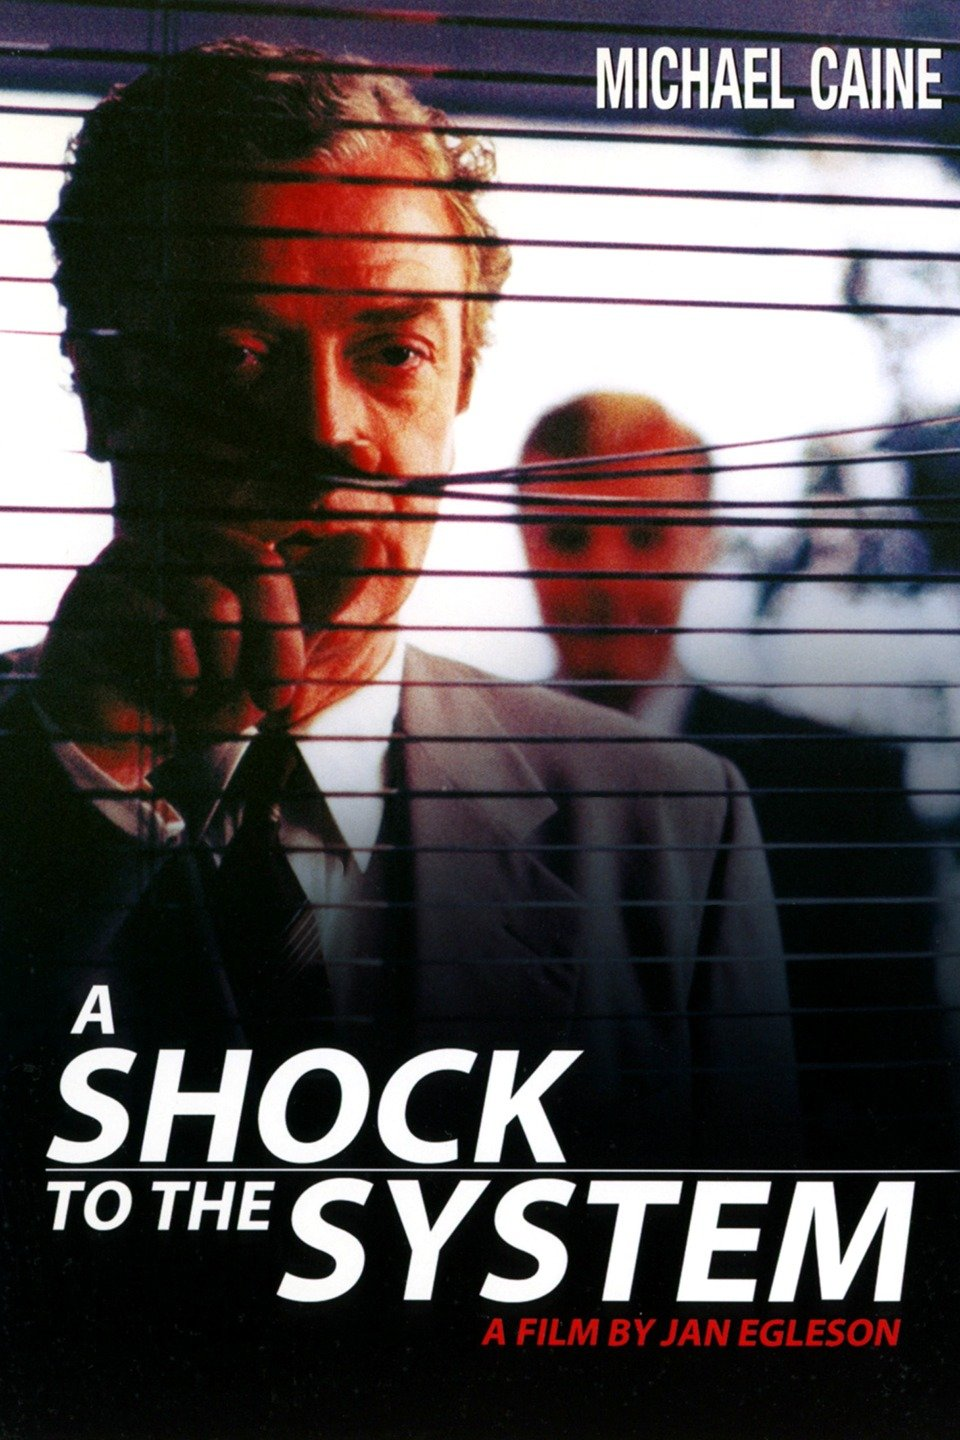 A Shock to the System (1990)